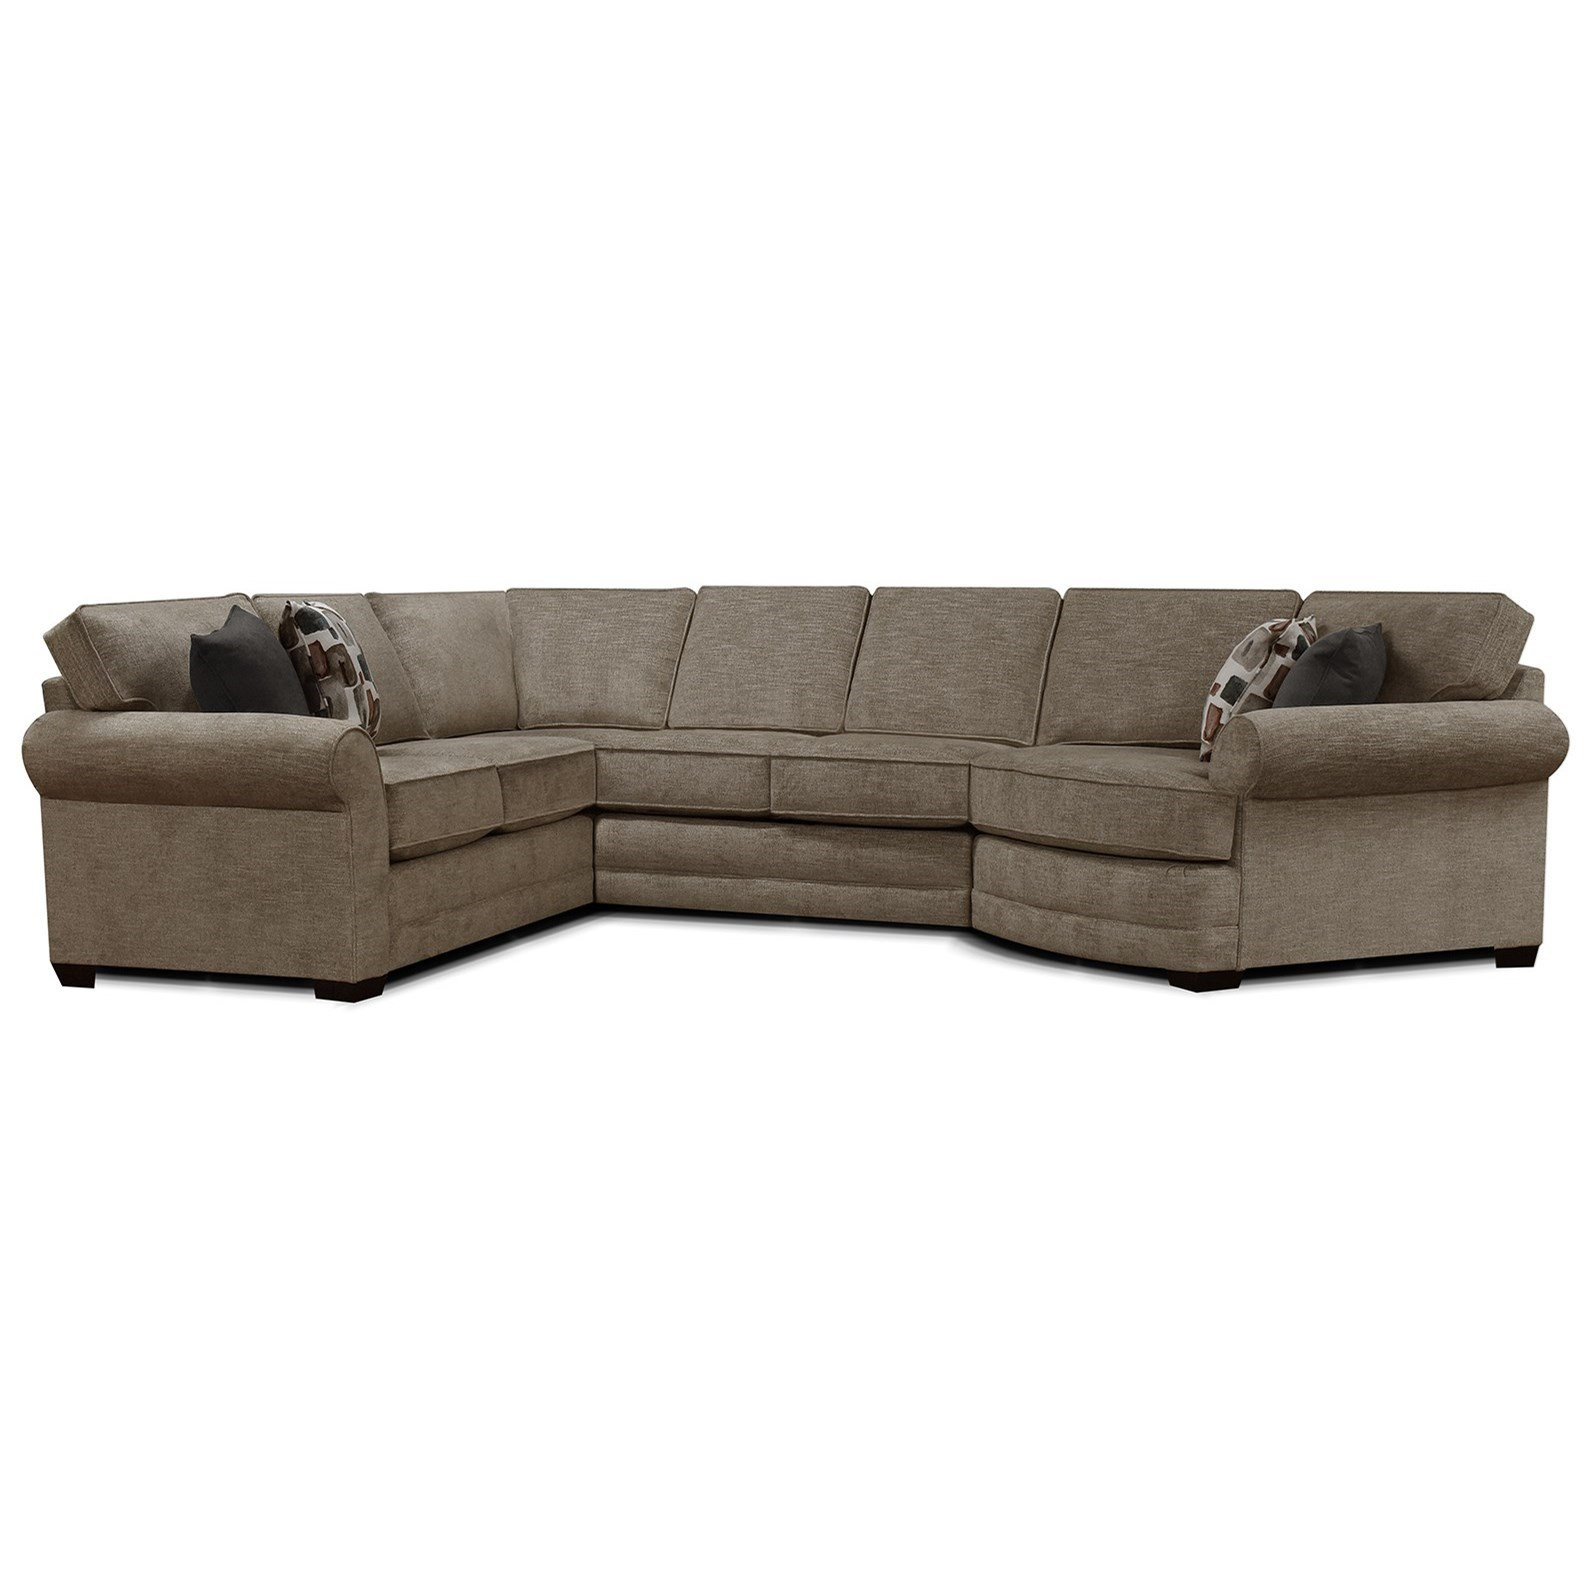 Brantley 4-Piece Sectional Sofa Cuddler by England at Rooms and Rest